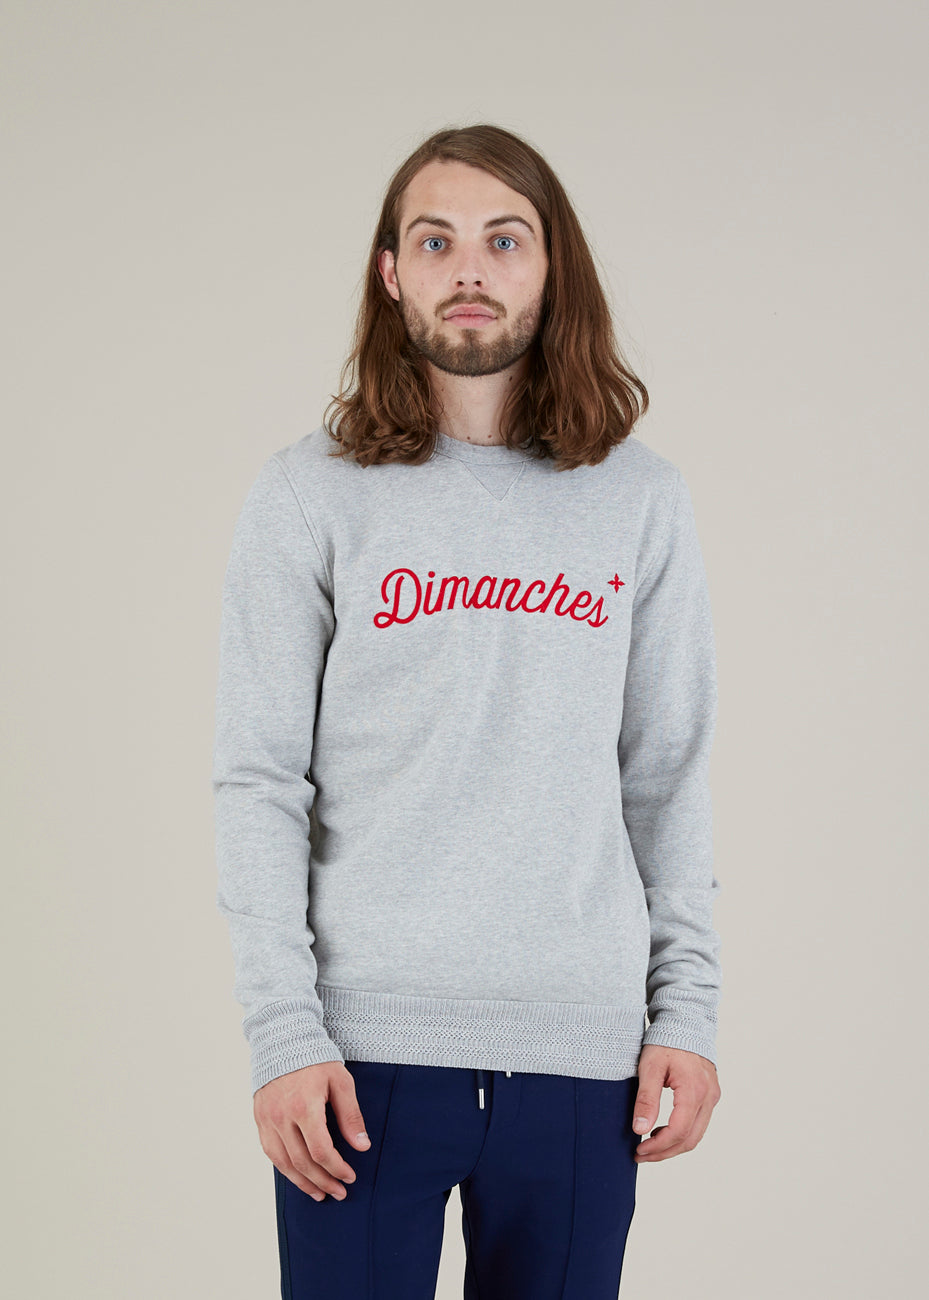 Commune de Paris Dimanches Sweatshirt